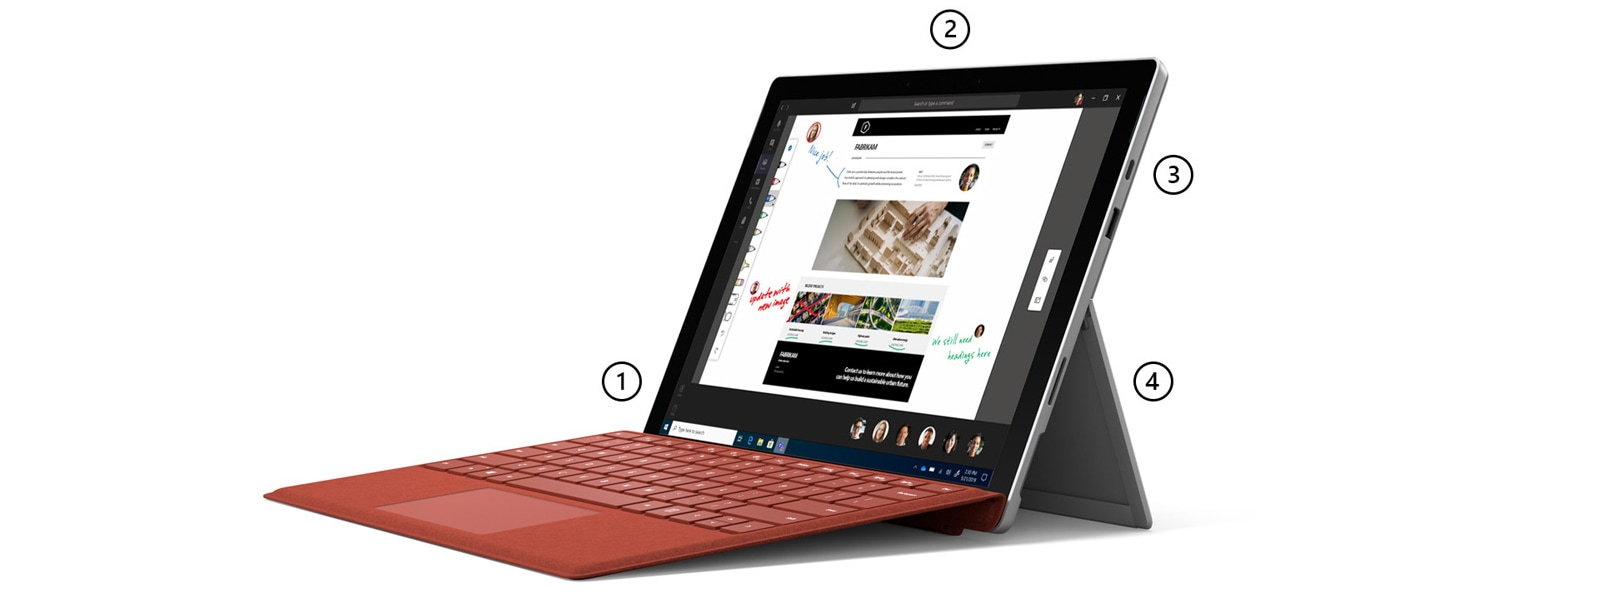 Surface Pro 7 in Laptop Mode with Surface Pro Signature Type Cover in Poppy Red with points highlighting Studio Microphones, front-facing camera, ports and kickstand